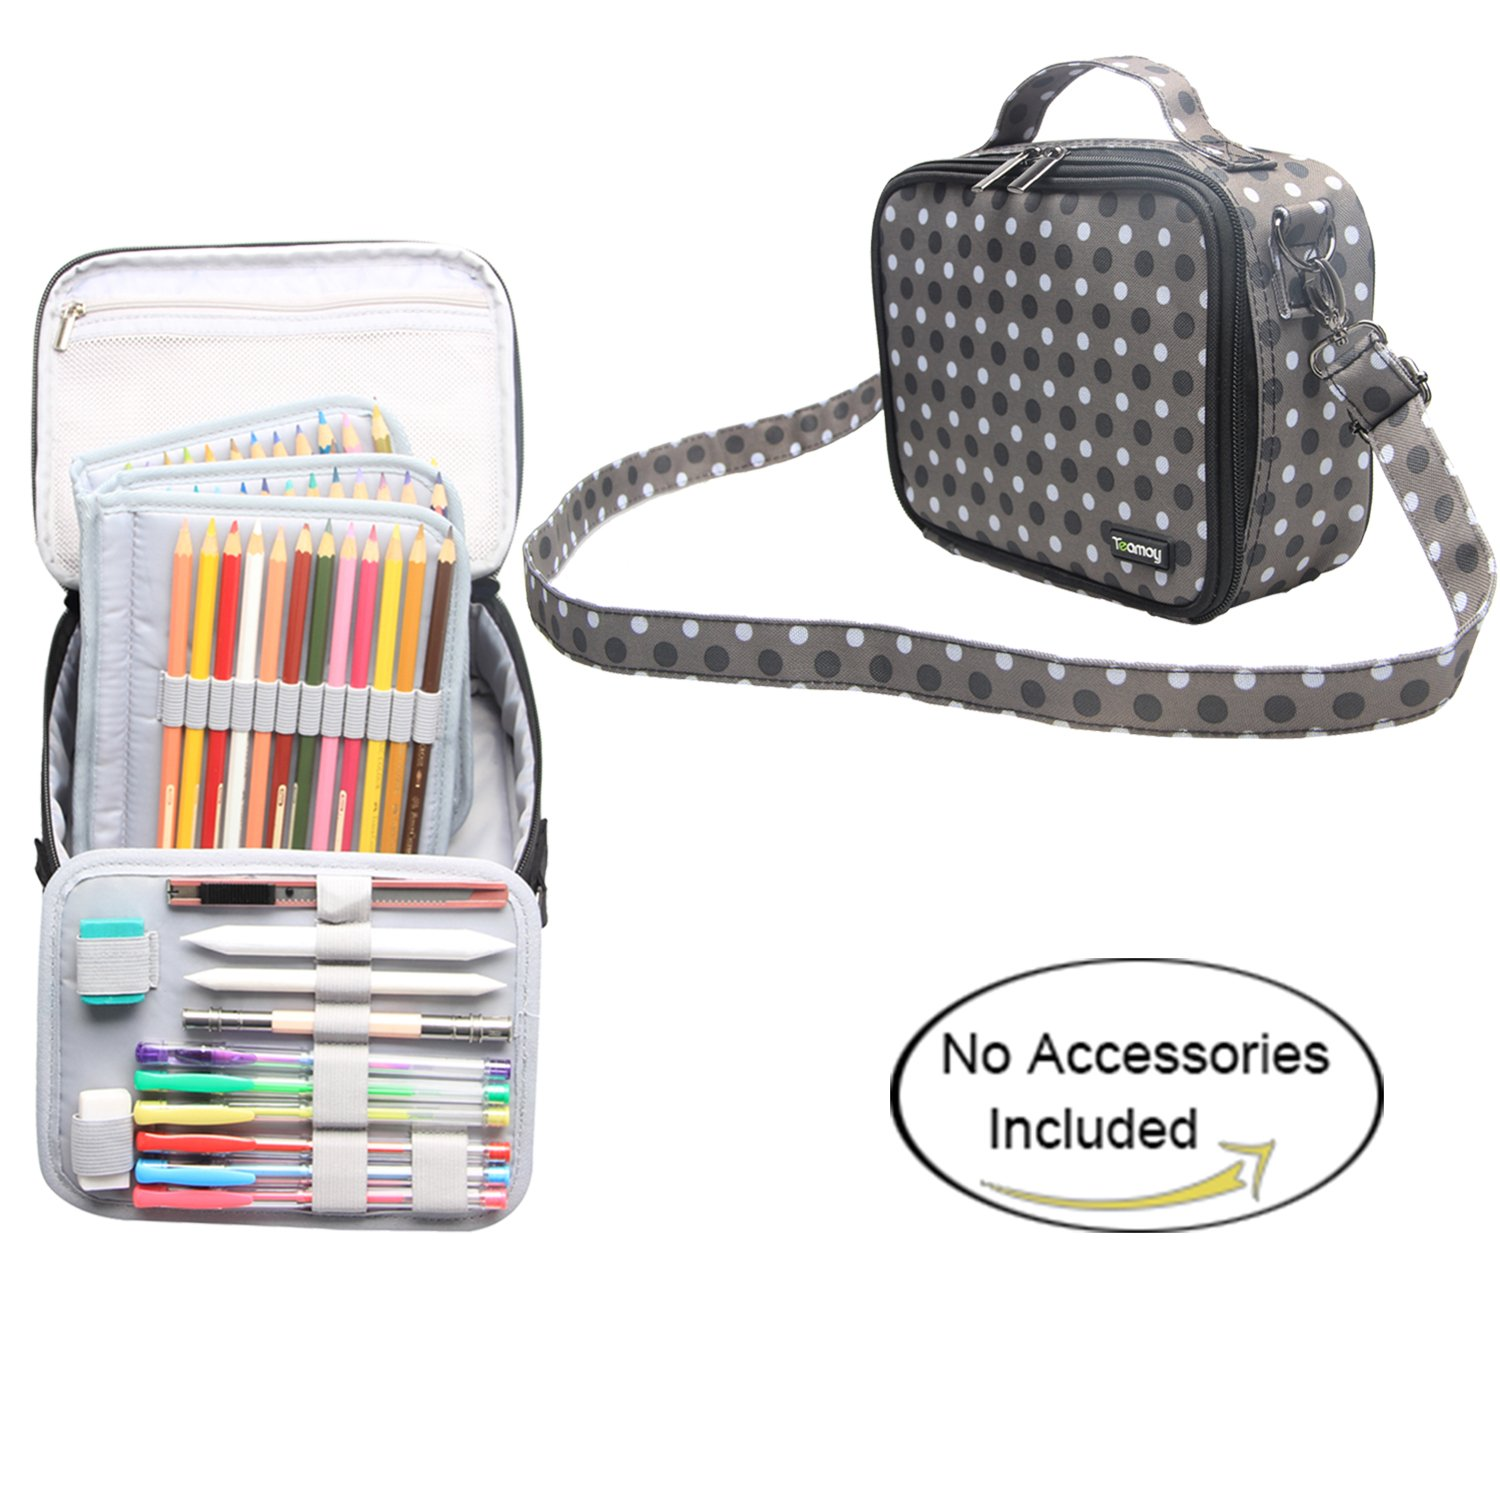 Teamoy Colored Pencils Case for 84 pencils, Travel Gadget Bag with Handle and Shoulder Strap, Stylish and Multi-purpose, Perfect Size for Travel or Daily Use, Gray Dots(NO Pencil included)